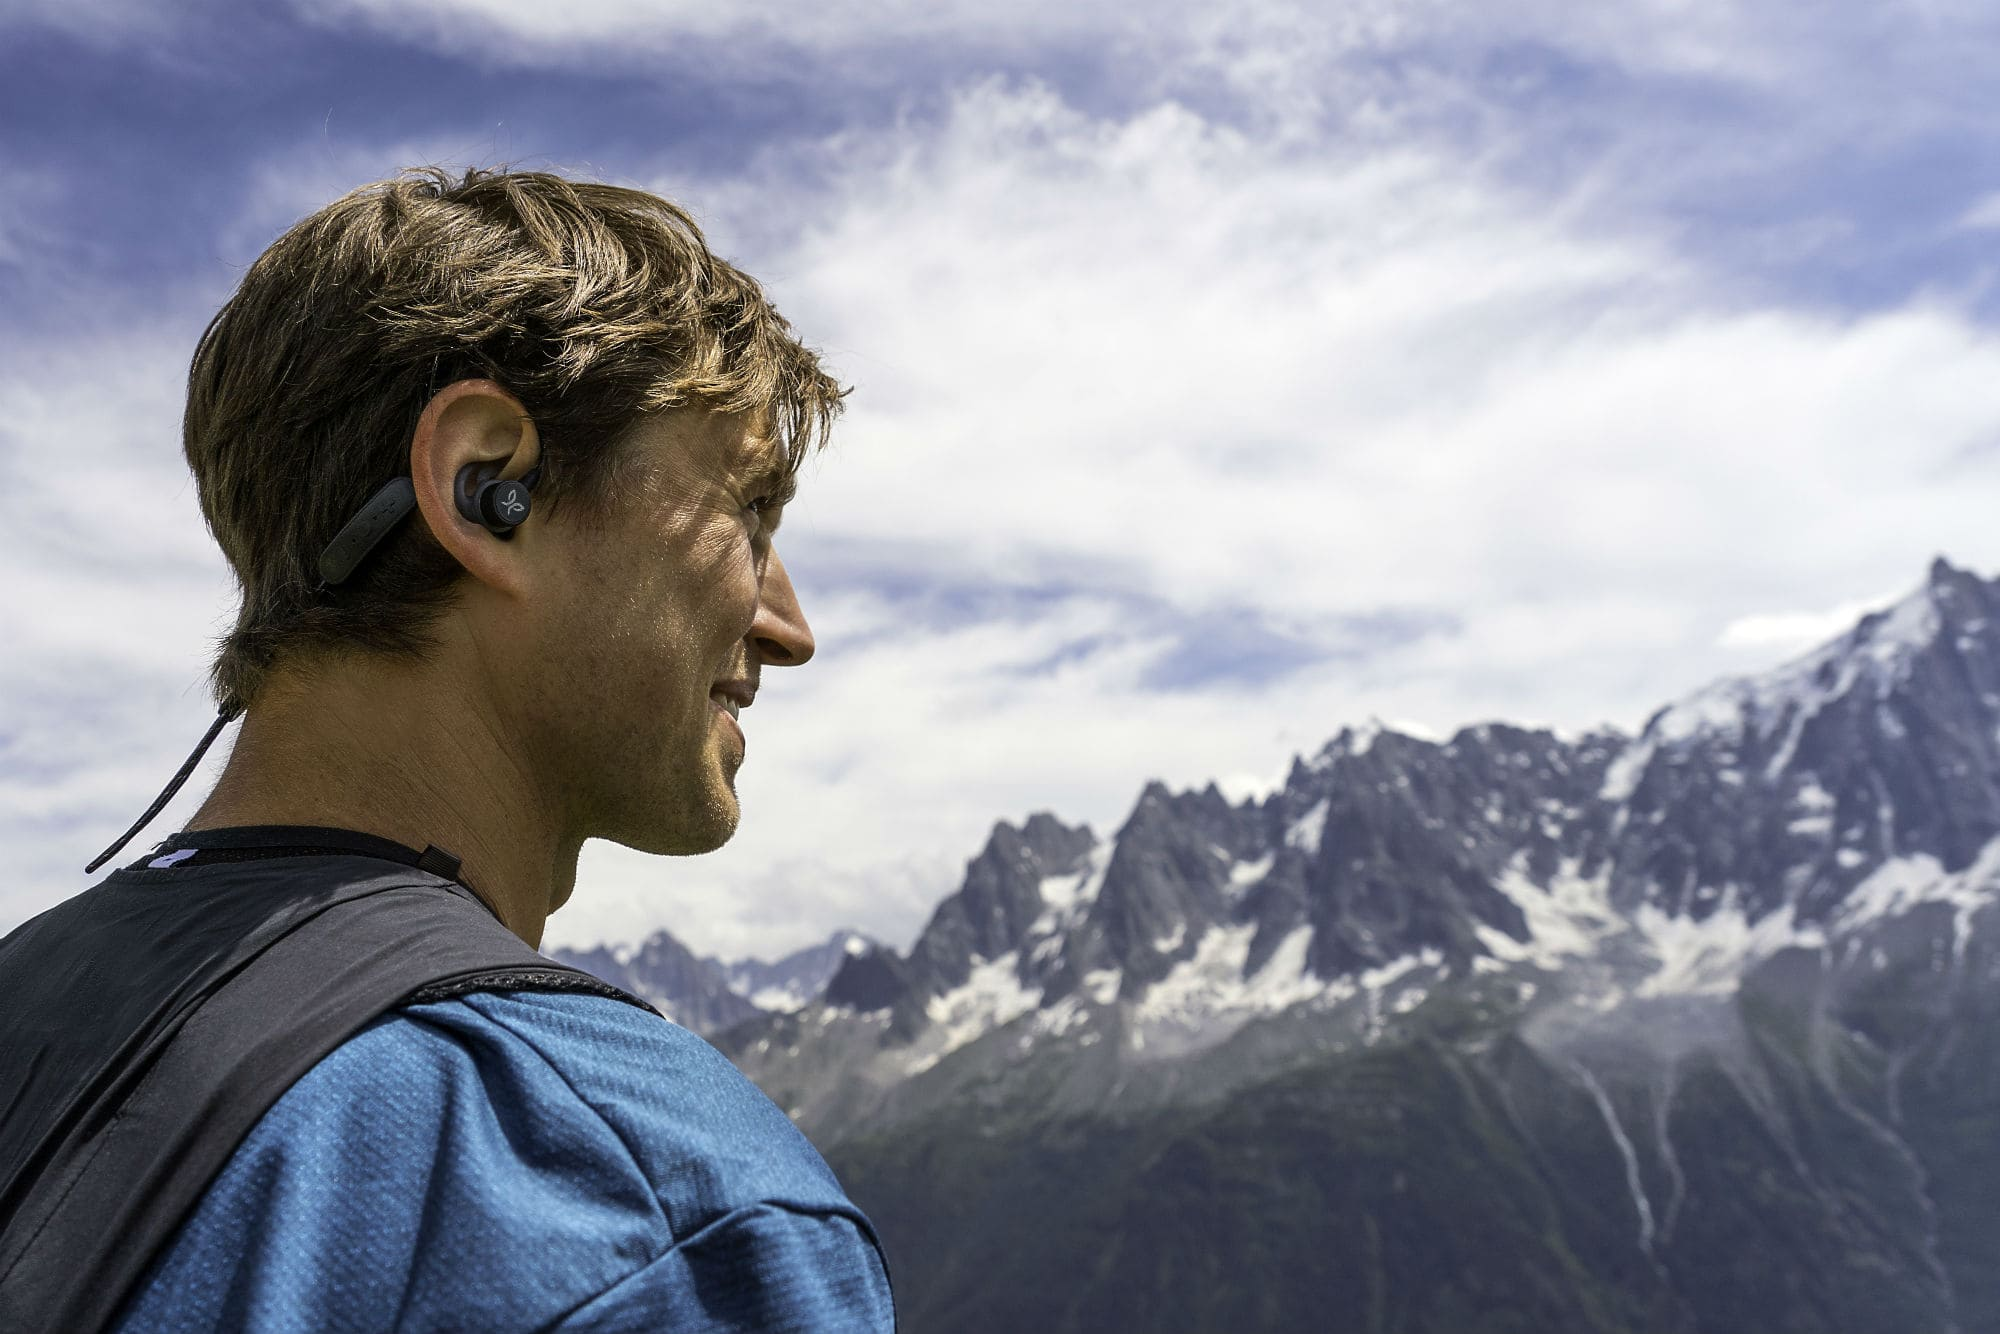 Tarah Pro sports earbuds are up to almost any adventure.